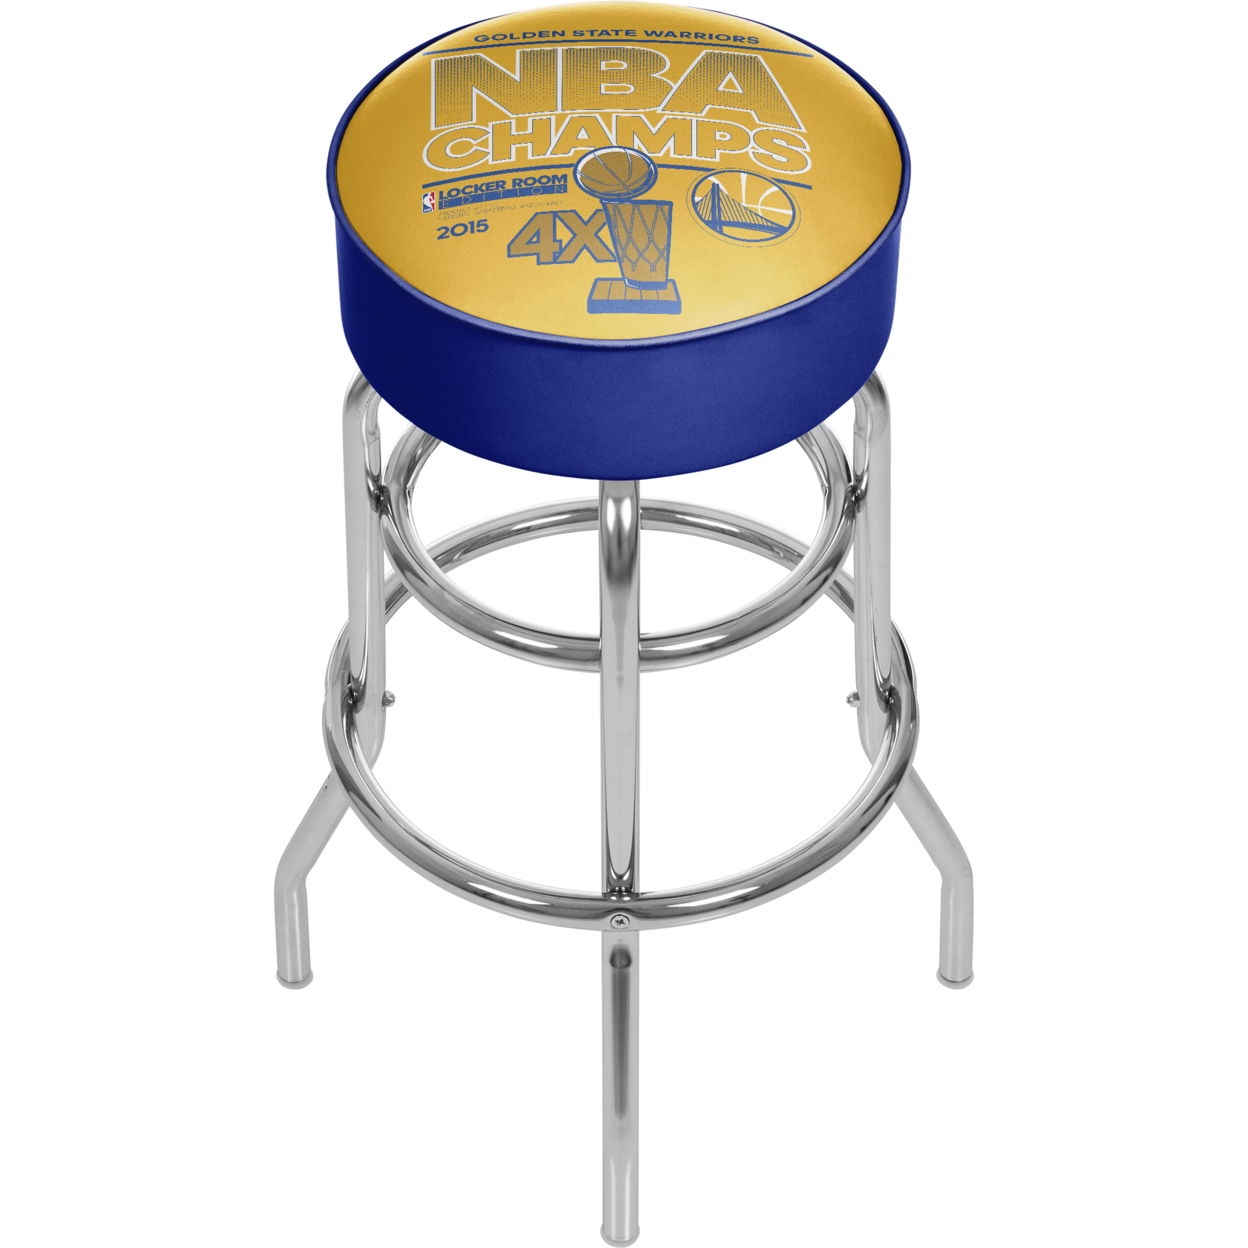 Golden State Warriors Chrome Bar Stool with Swivel - NBA Champs фанатская атрибутика nike curry nba